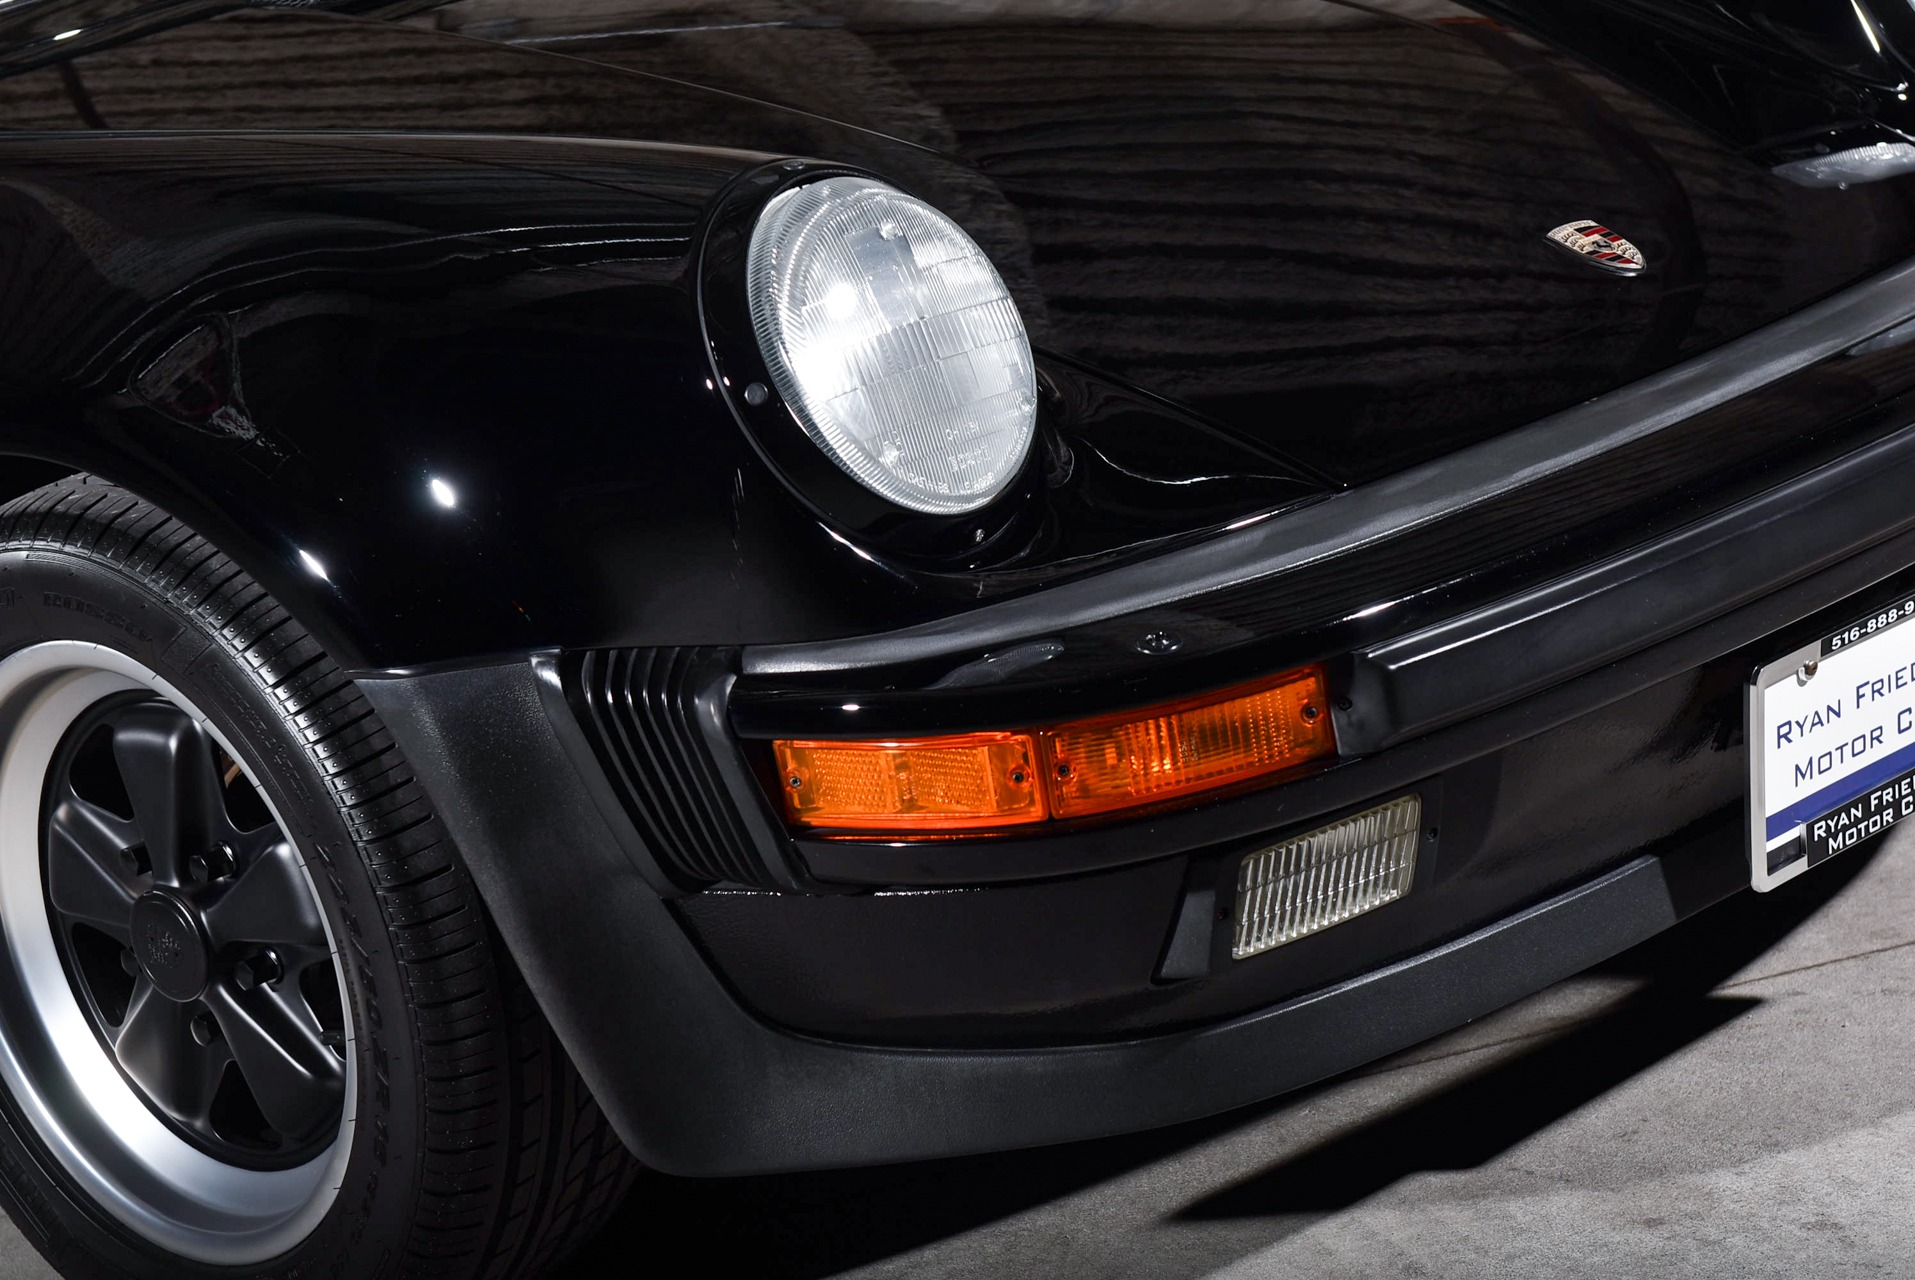 Used 1987 Porsche 911 Carrera Turbo | Valley Stream, NY